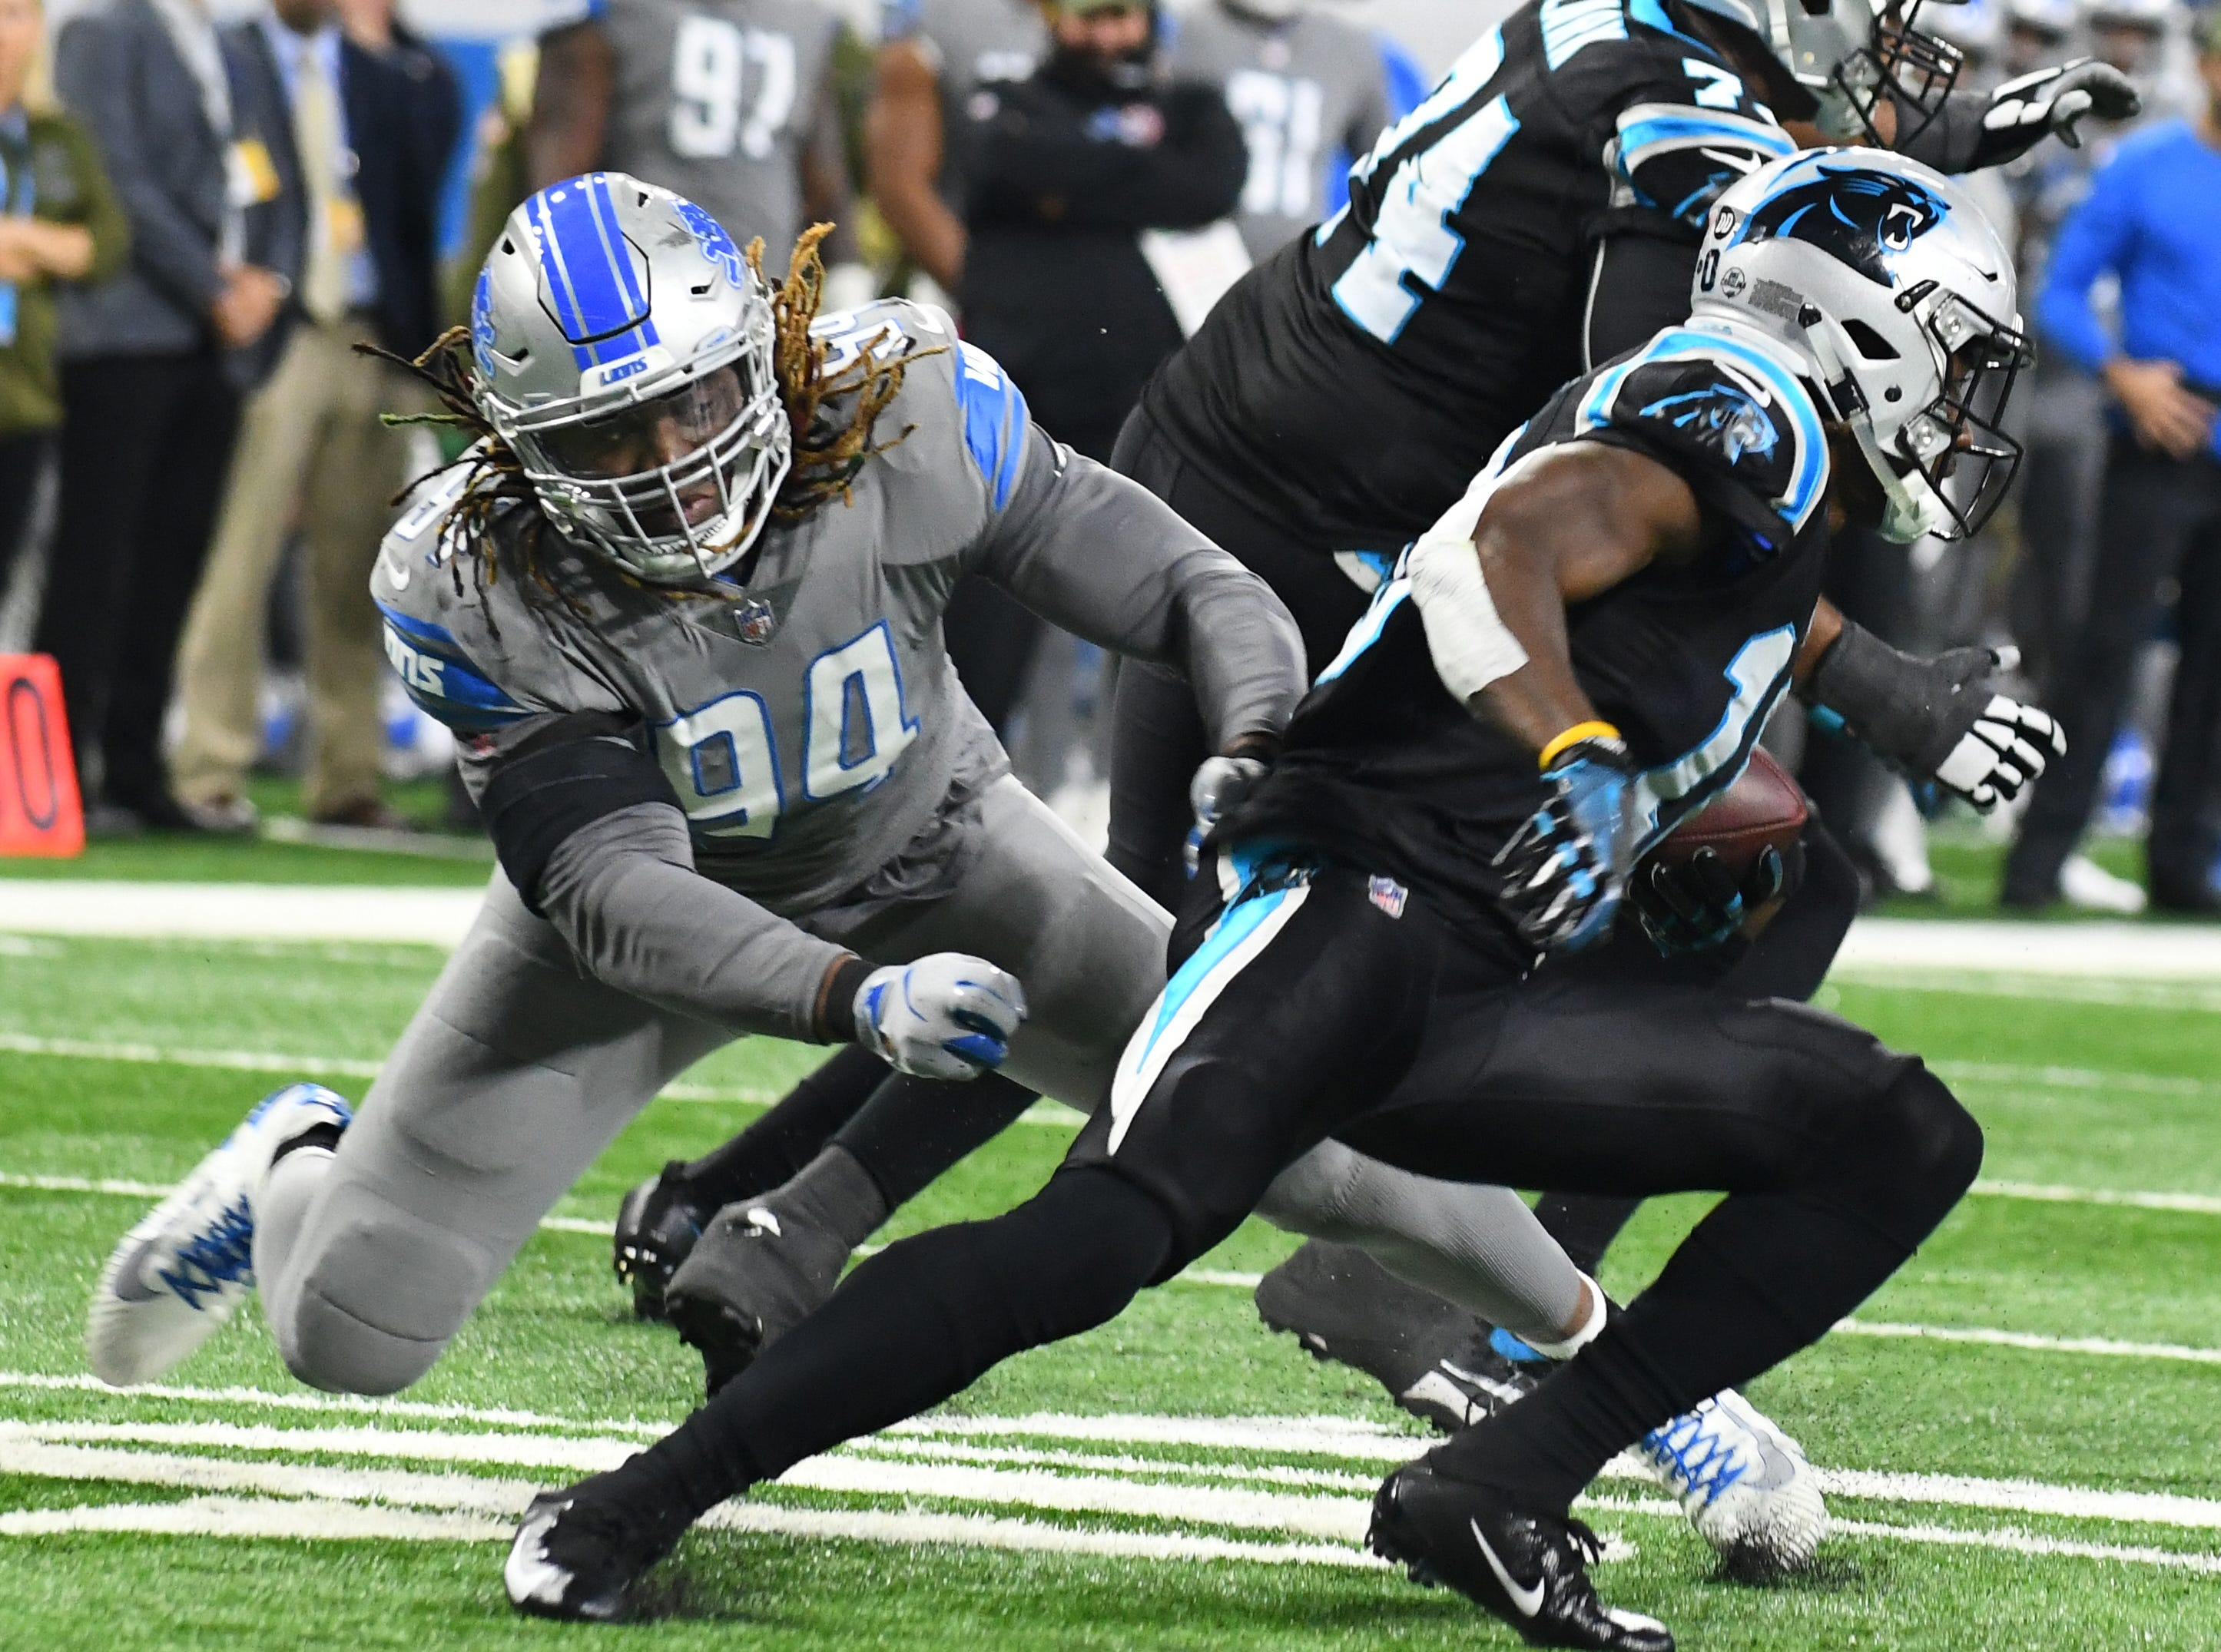 DEFENSE DE Ziggy Ansah : The Lions paid a lot of money for another season of Ansah, and when he was on the field, you could see why. He played just 146 snaps, but managed to generate 20 quarterback pressures and four sacks. No one else on the roster was able to disrupt the pocket like that. But predictably, the former Pro Bowler's season was cut short by injury, leaving the team and fans to wonder what could have been. Grade: B